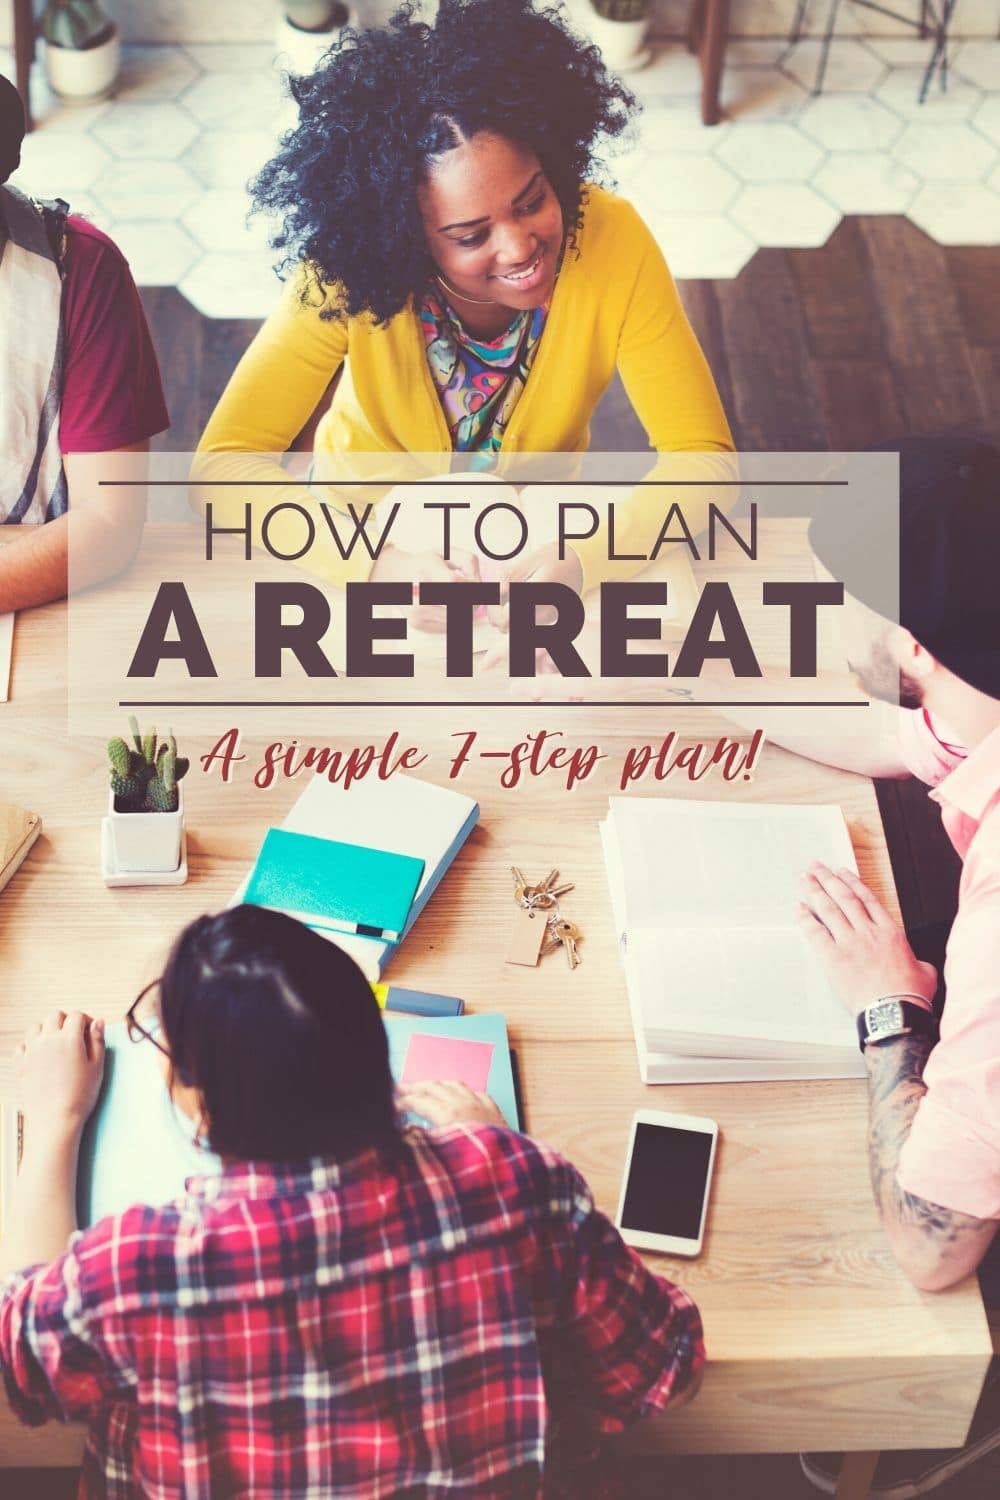 Whether you're planning a multi-day get together with distant friends, a training event for volunteers or staff, or a mastermind retreat, this simple 7-step process will teach you how to plan a retreat that is a complete success! #retreat #eventorganizer #mastermind #gettogethers via @wondermomwannab